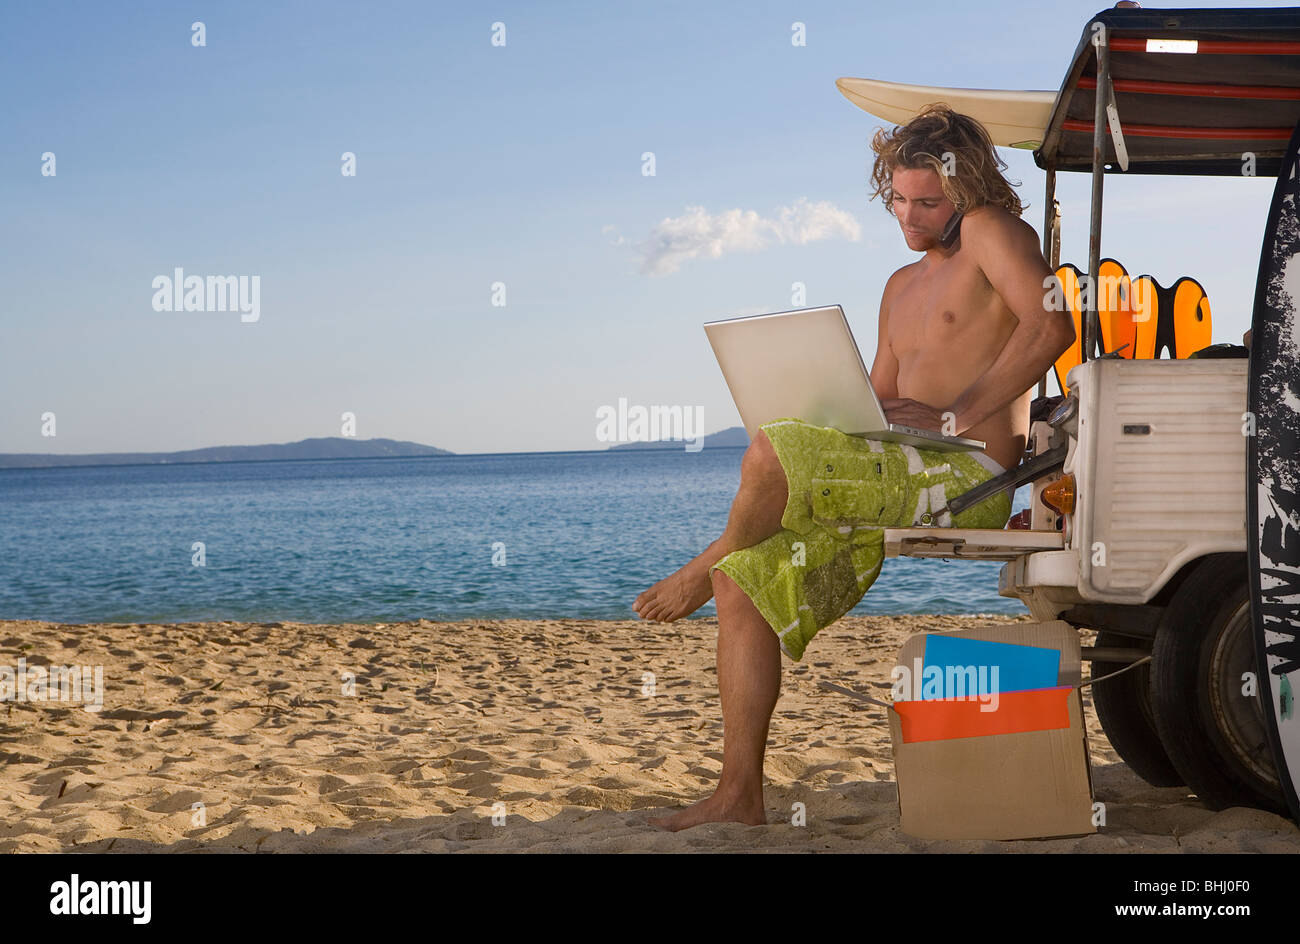 man at beach jeep with laptop, phone - Stock Image